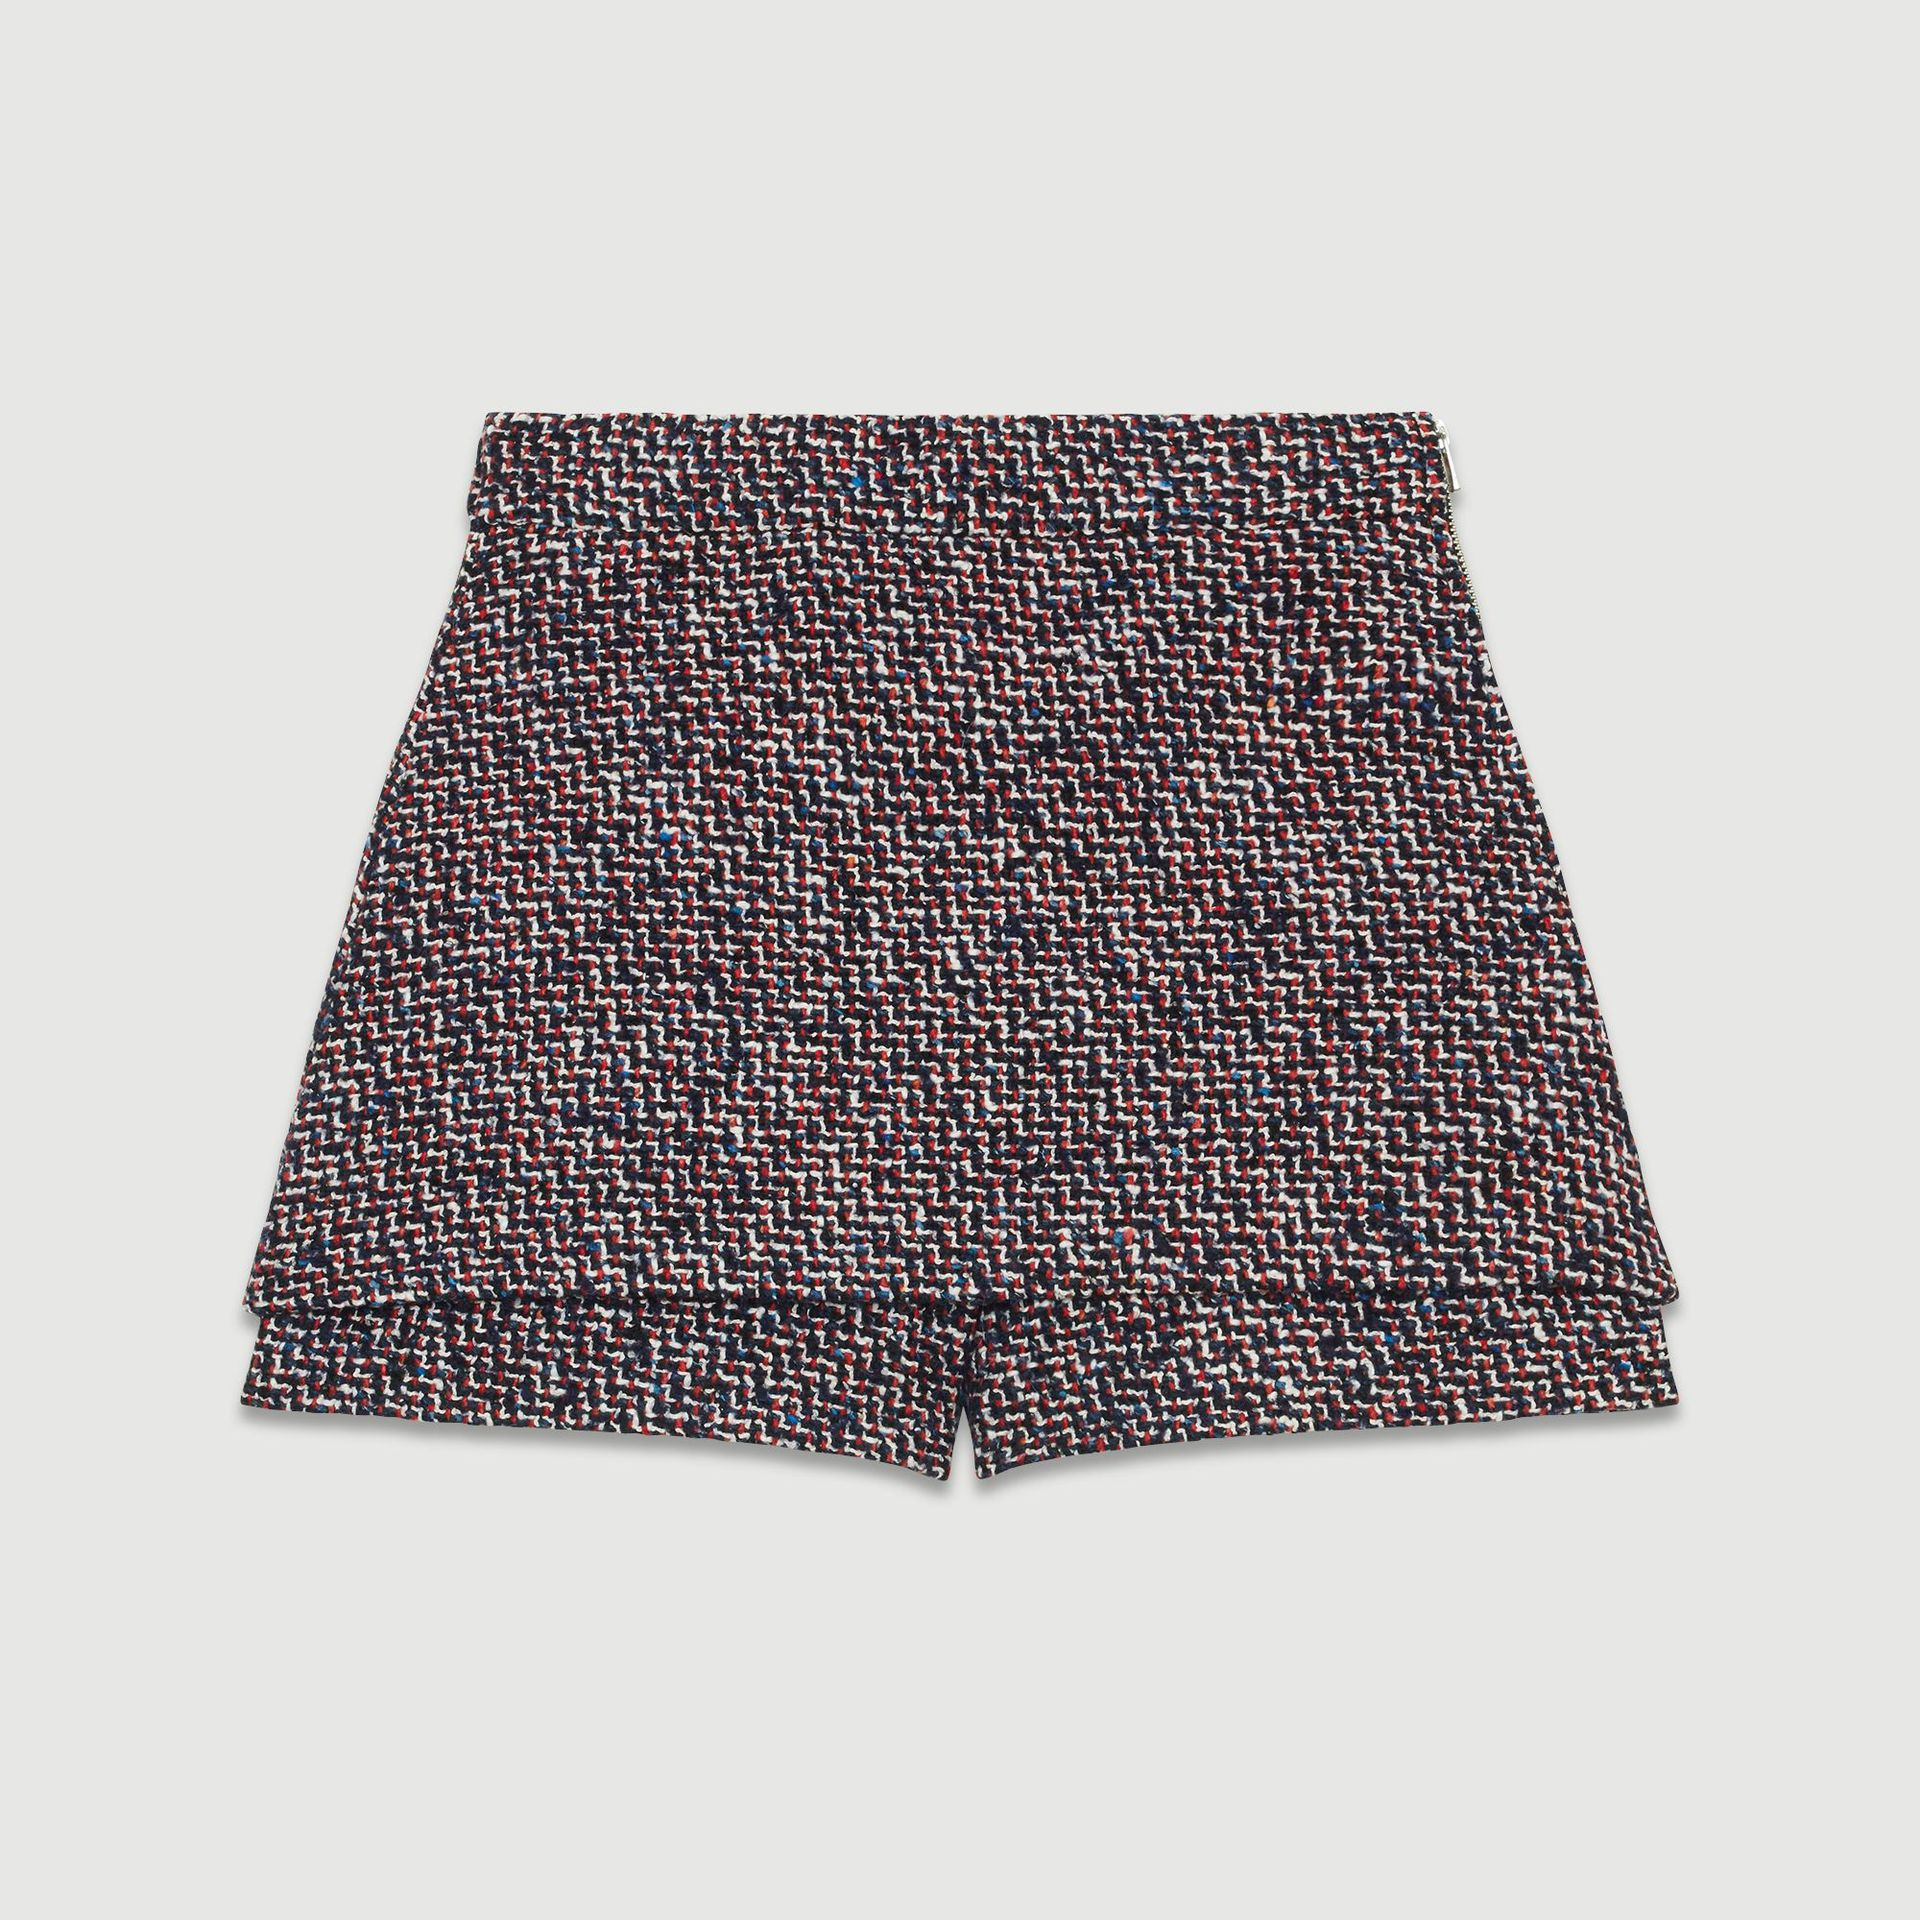 Tweed Women's Mini Skirt Shorts Female Casual Fake Two Pieces Skirts Straight Pants Autumn Winter